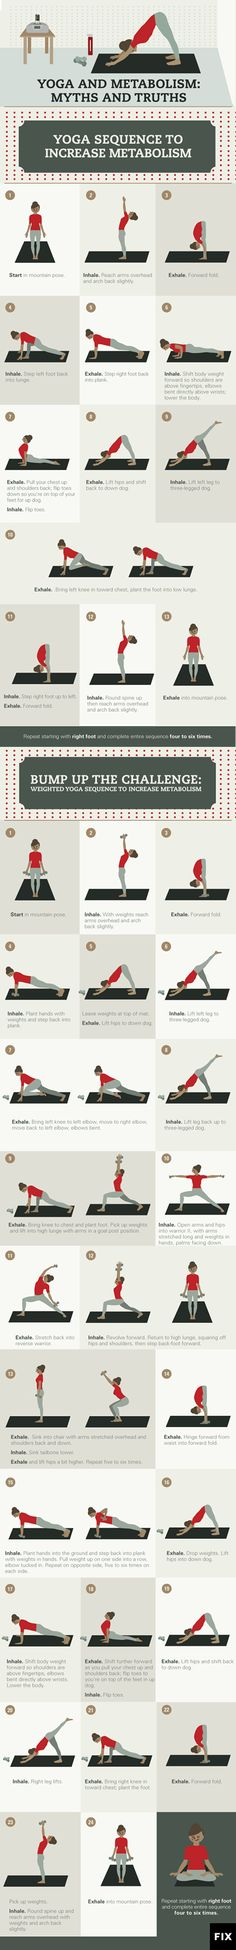 How Yoga Affects Metabolism